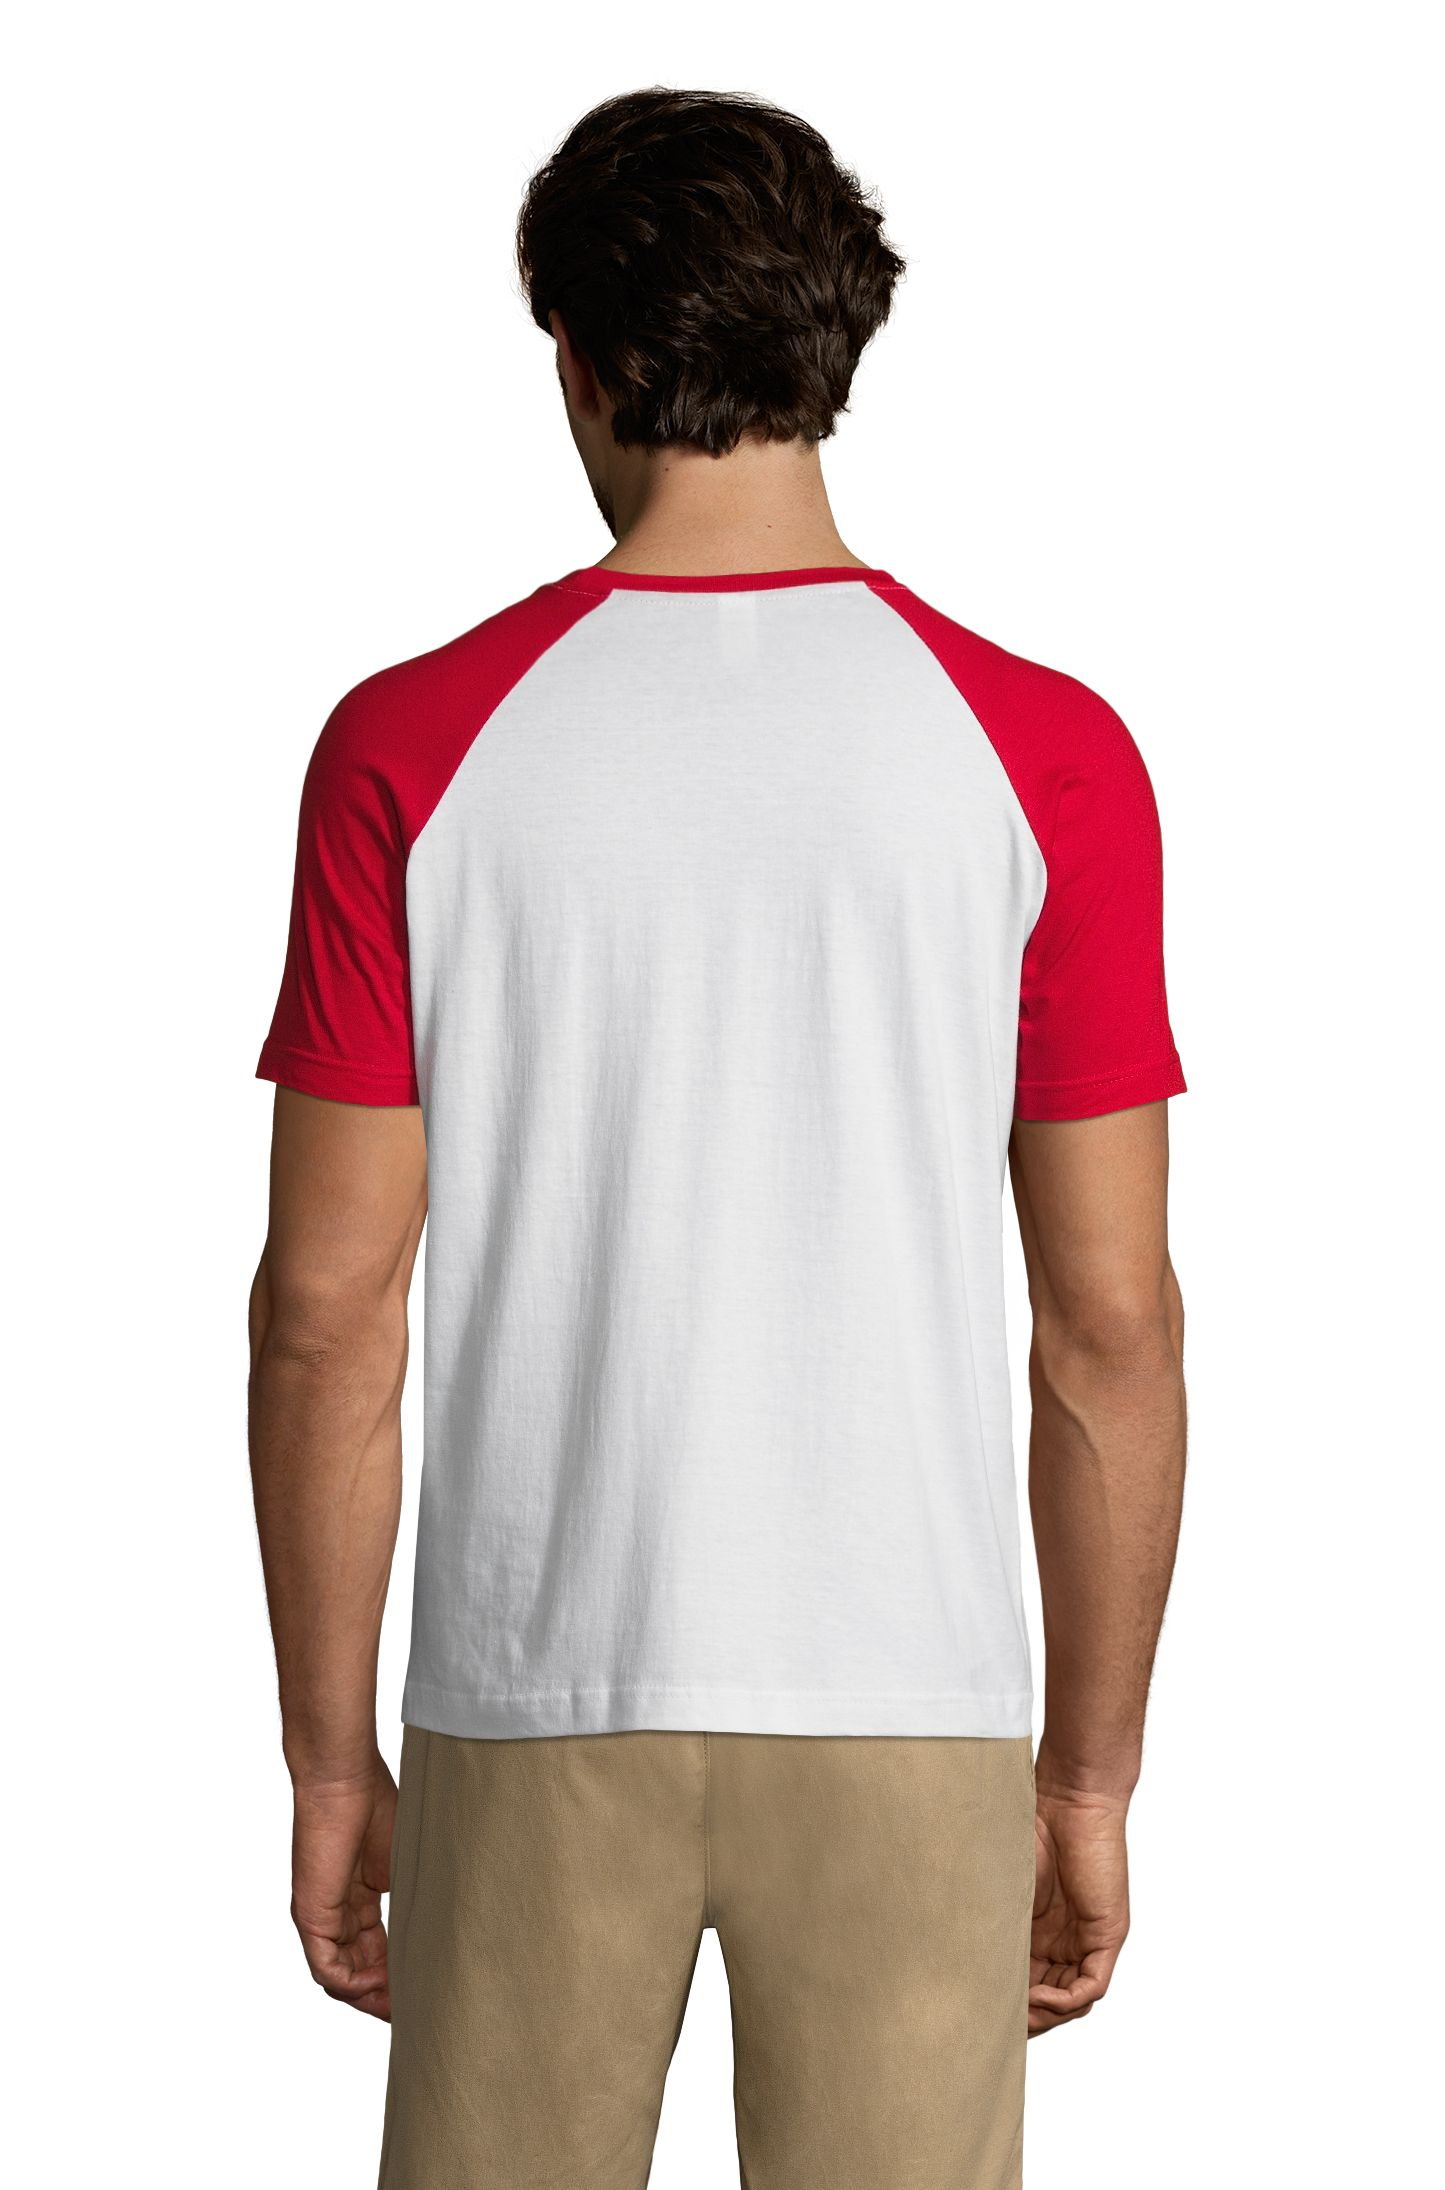 987 - White / Red